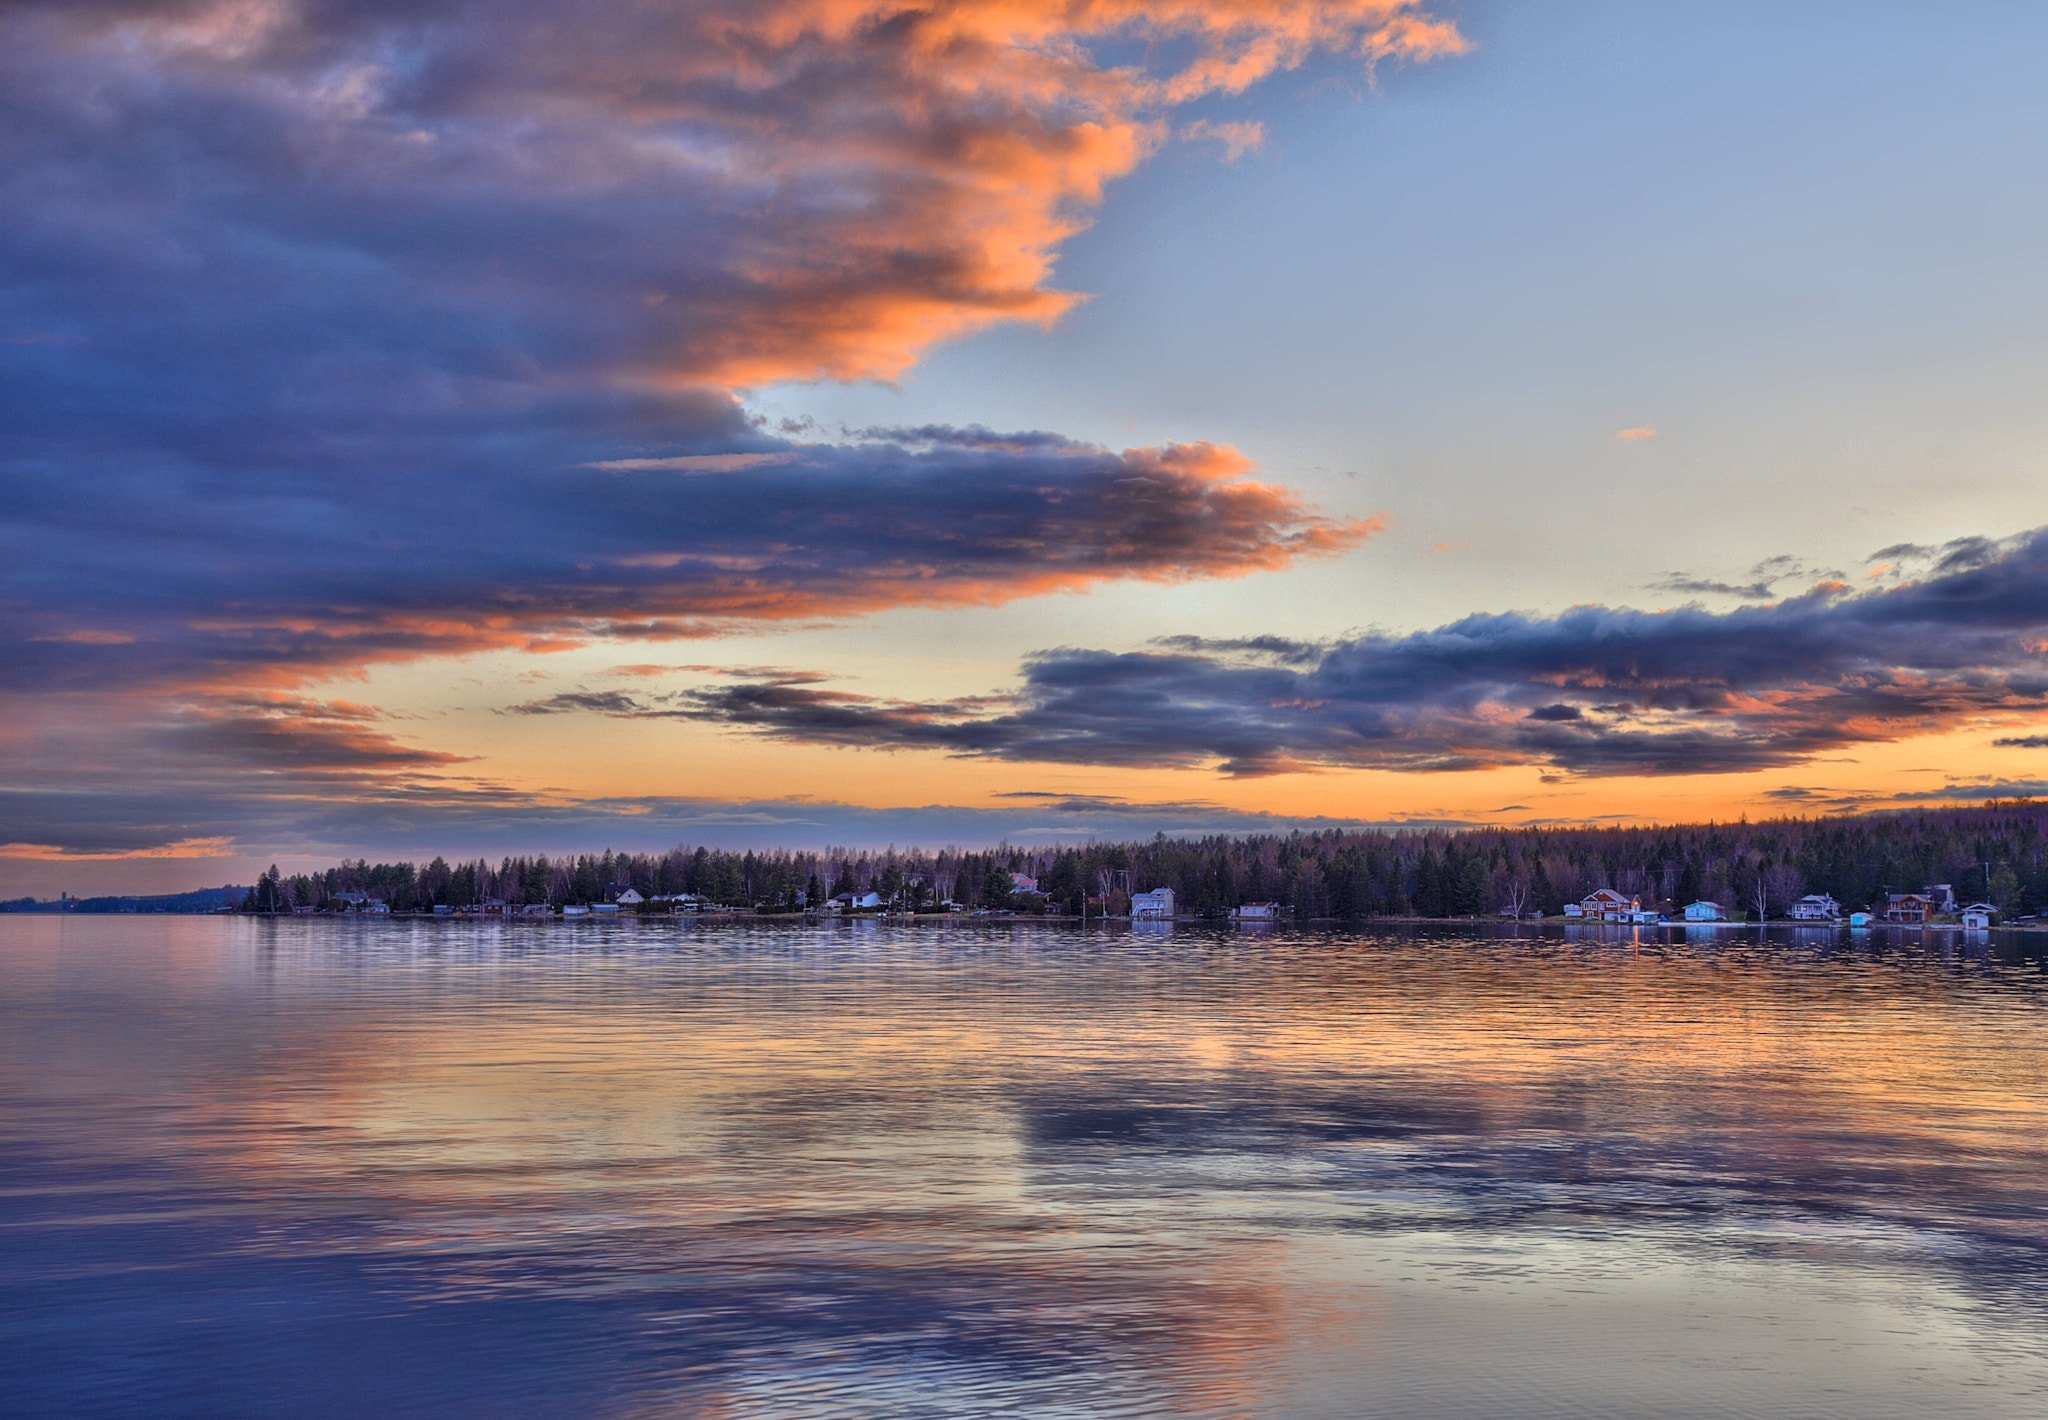 Photograph Sunset on the lake 1 by Jean-François Pidgeon on 500px